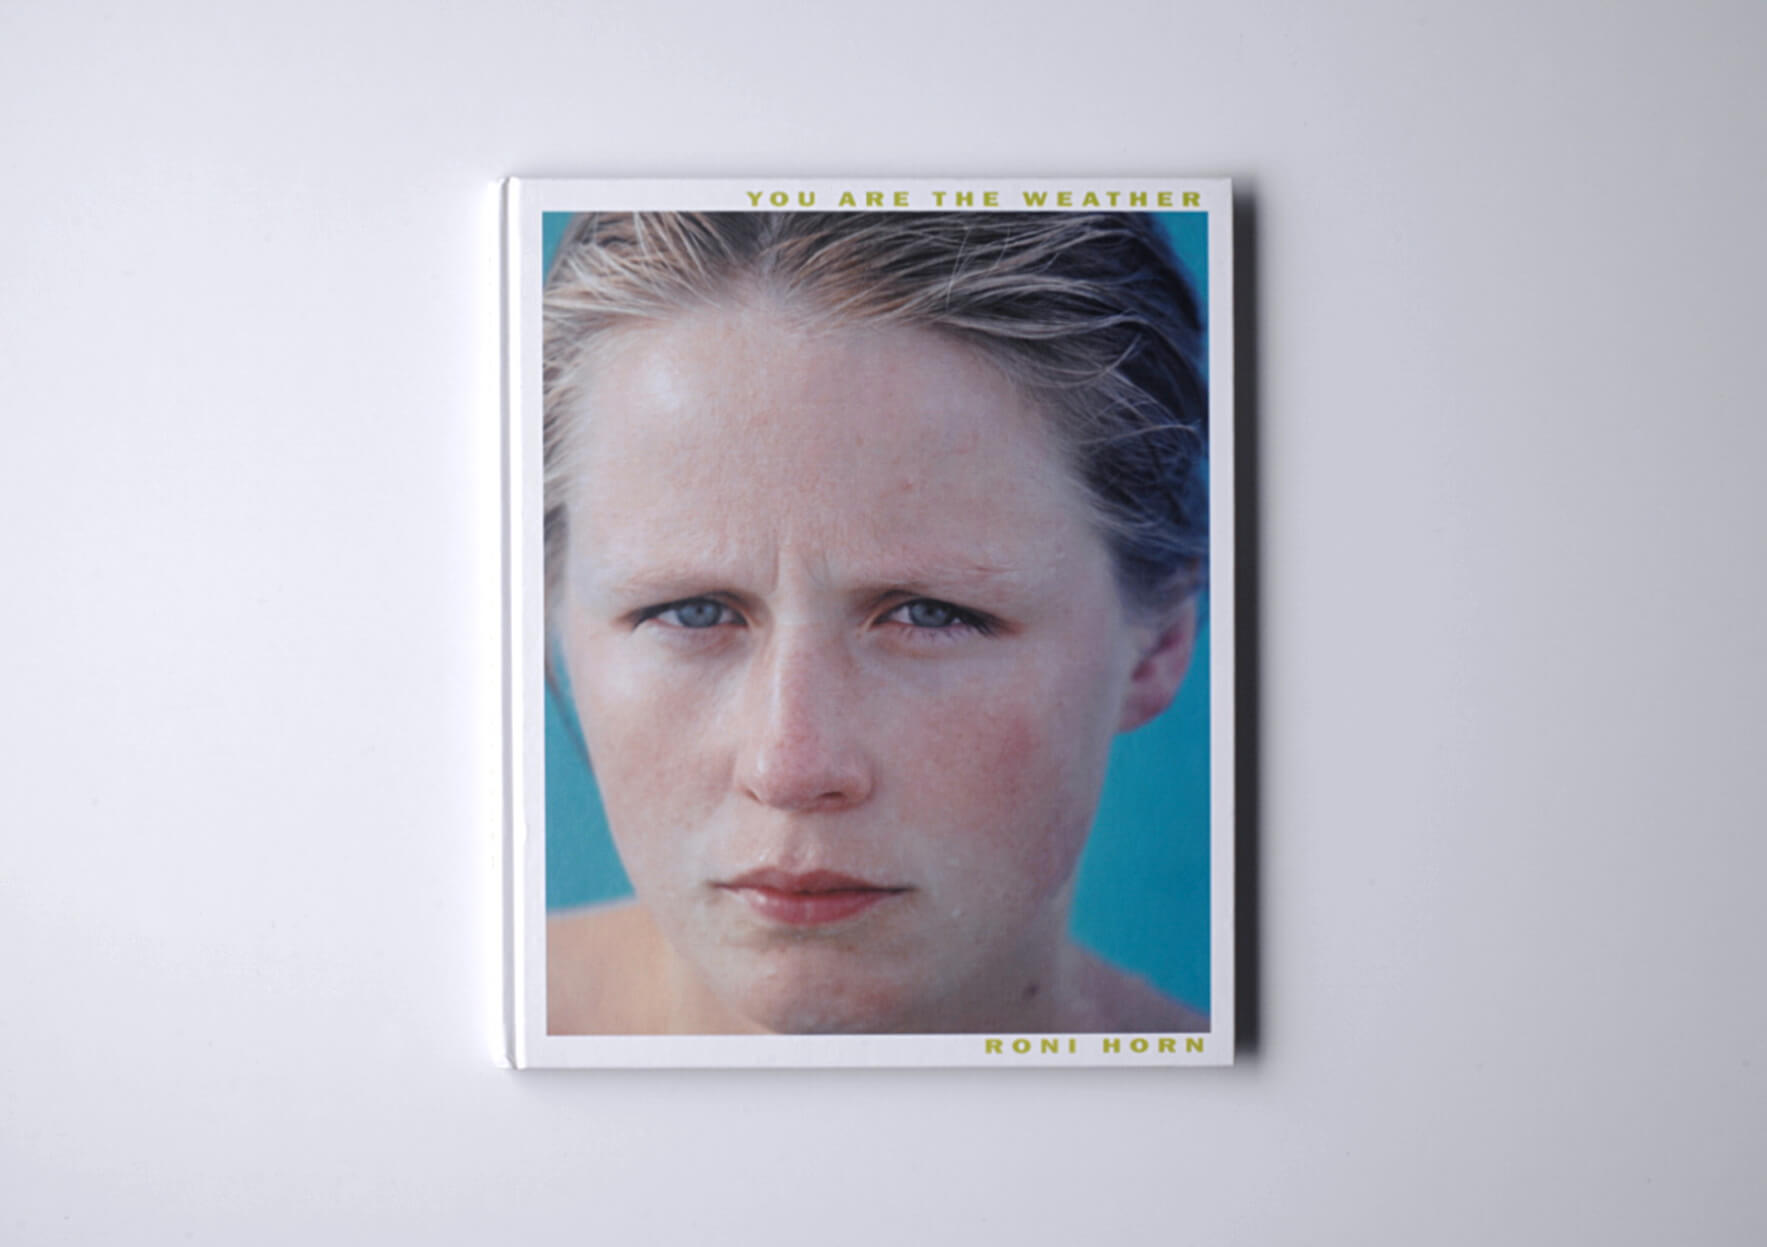 Roni Horn You are the weather, 1997 28,5 x 24 cm, 126 p. Ed. Scalo, Berlin | Mother | ProjecteSD